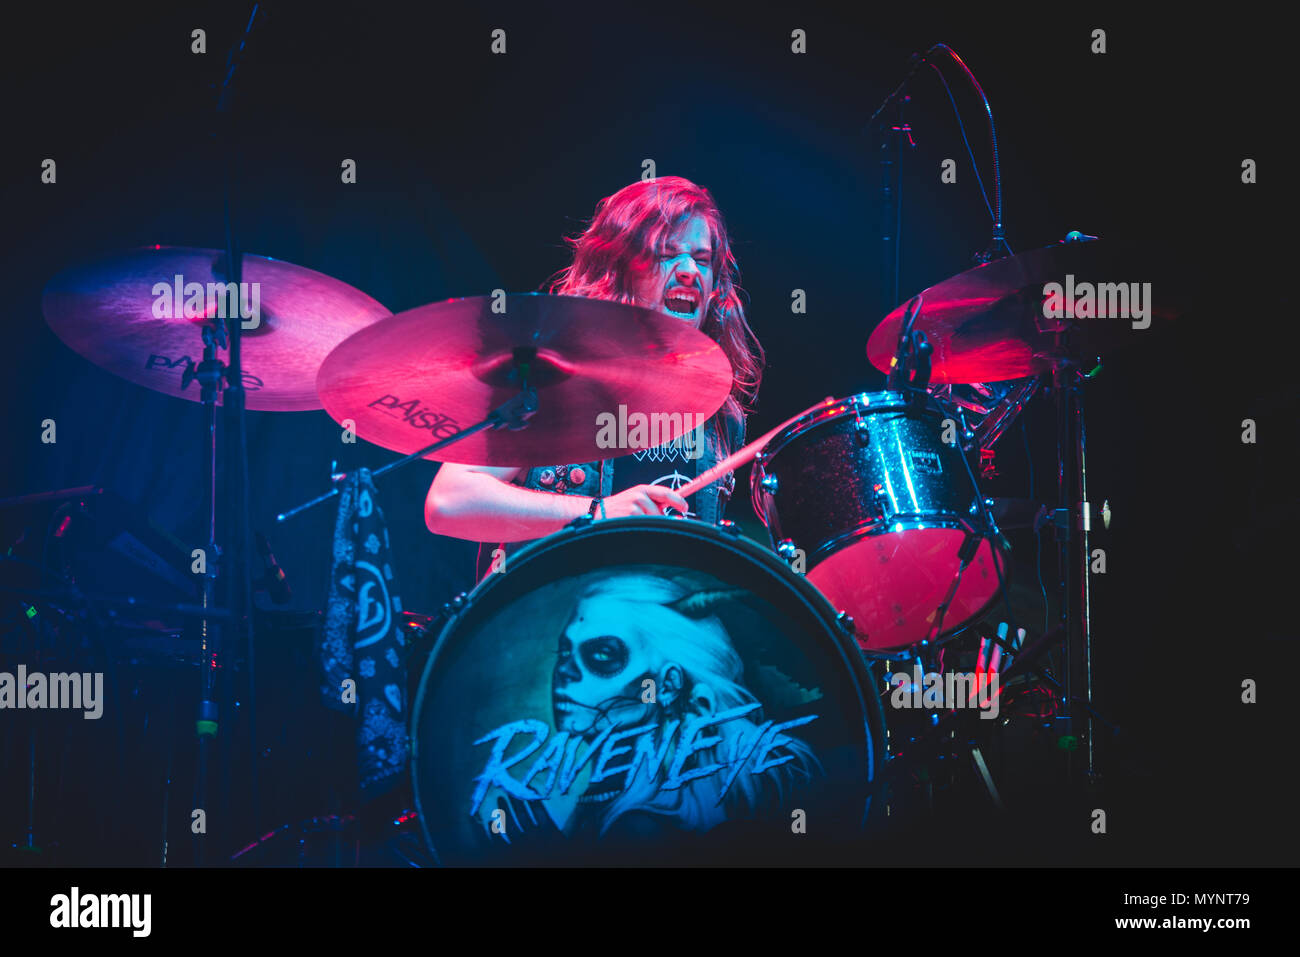 Italy: 2017 February 2nd: The English rock band Raveneye pictured performing live on stage at the Pala Alpitour, opening for the Kiss' World Tour 2017 Stock Photo